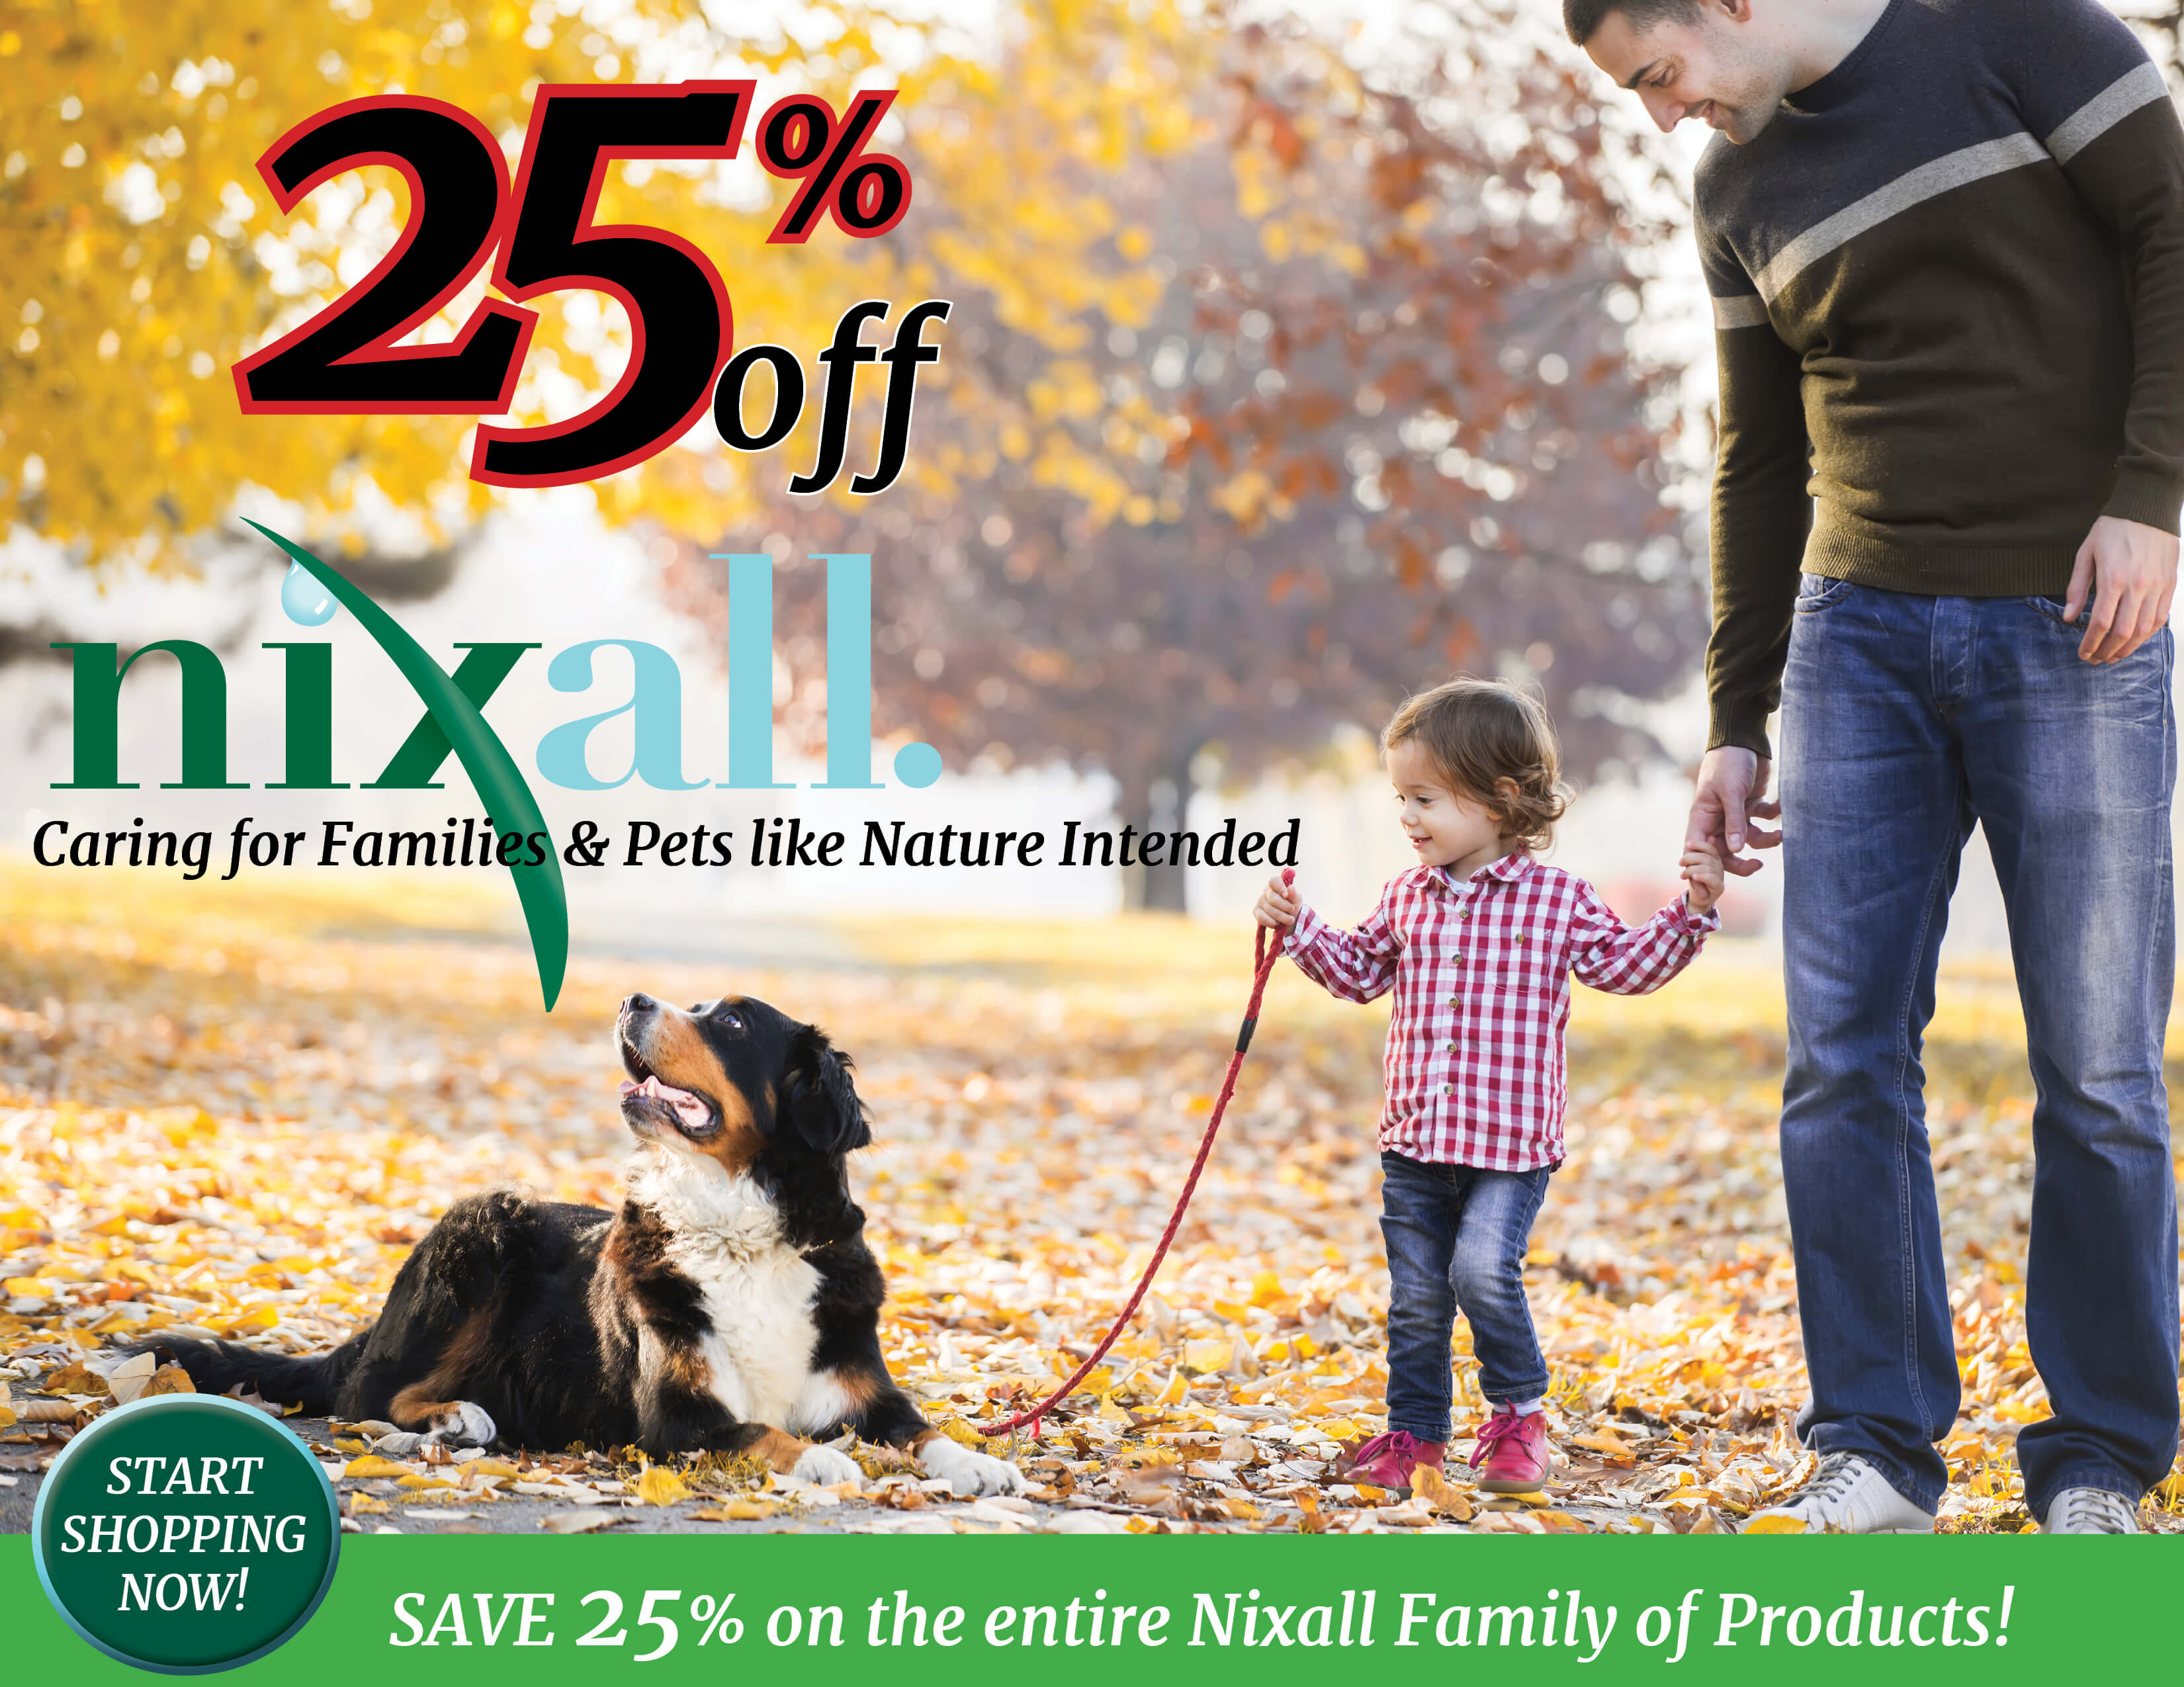 25% OFF Nixall Products